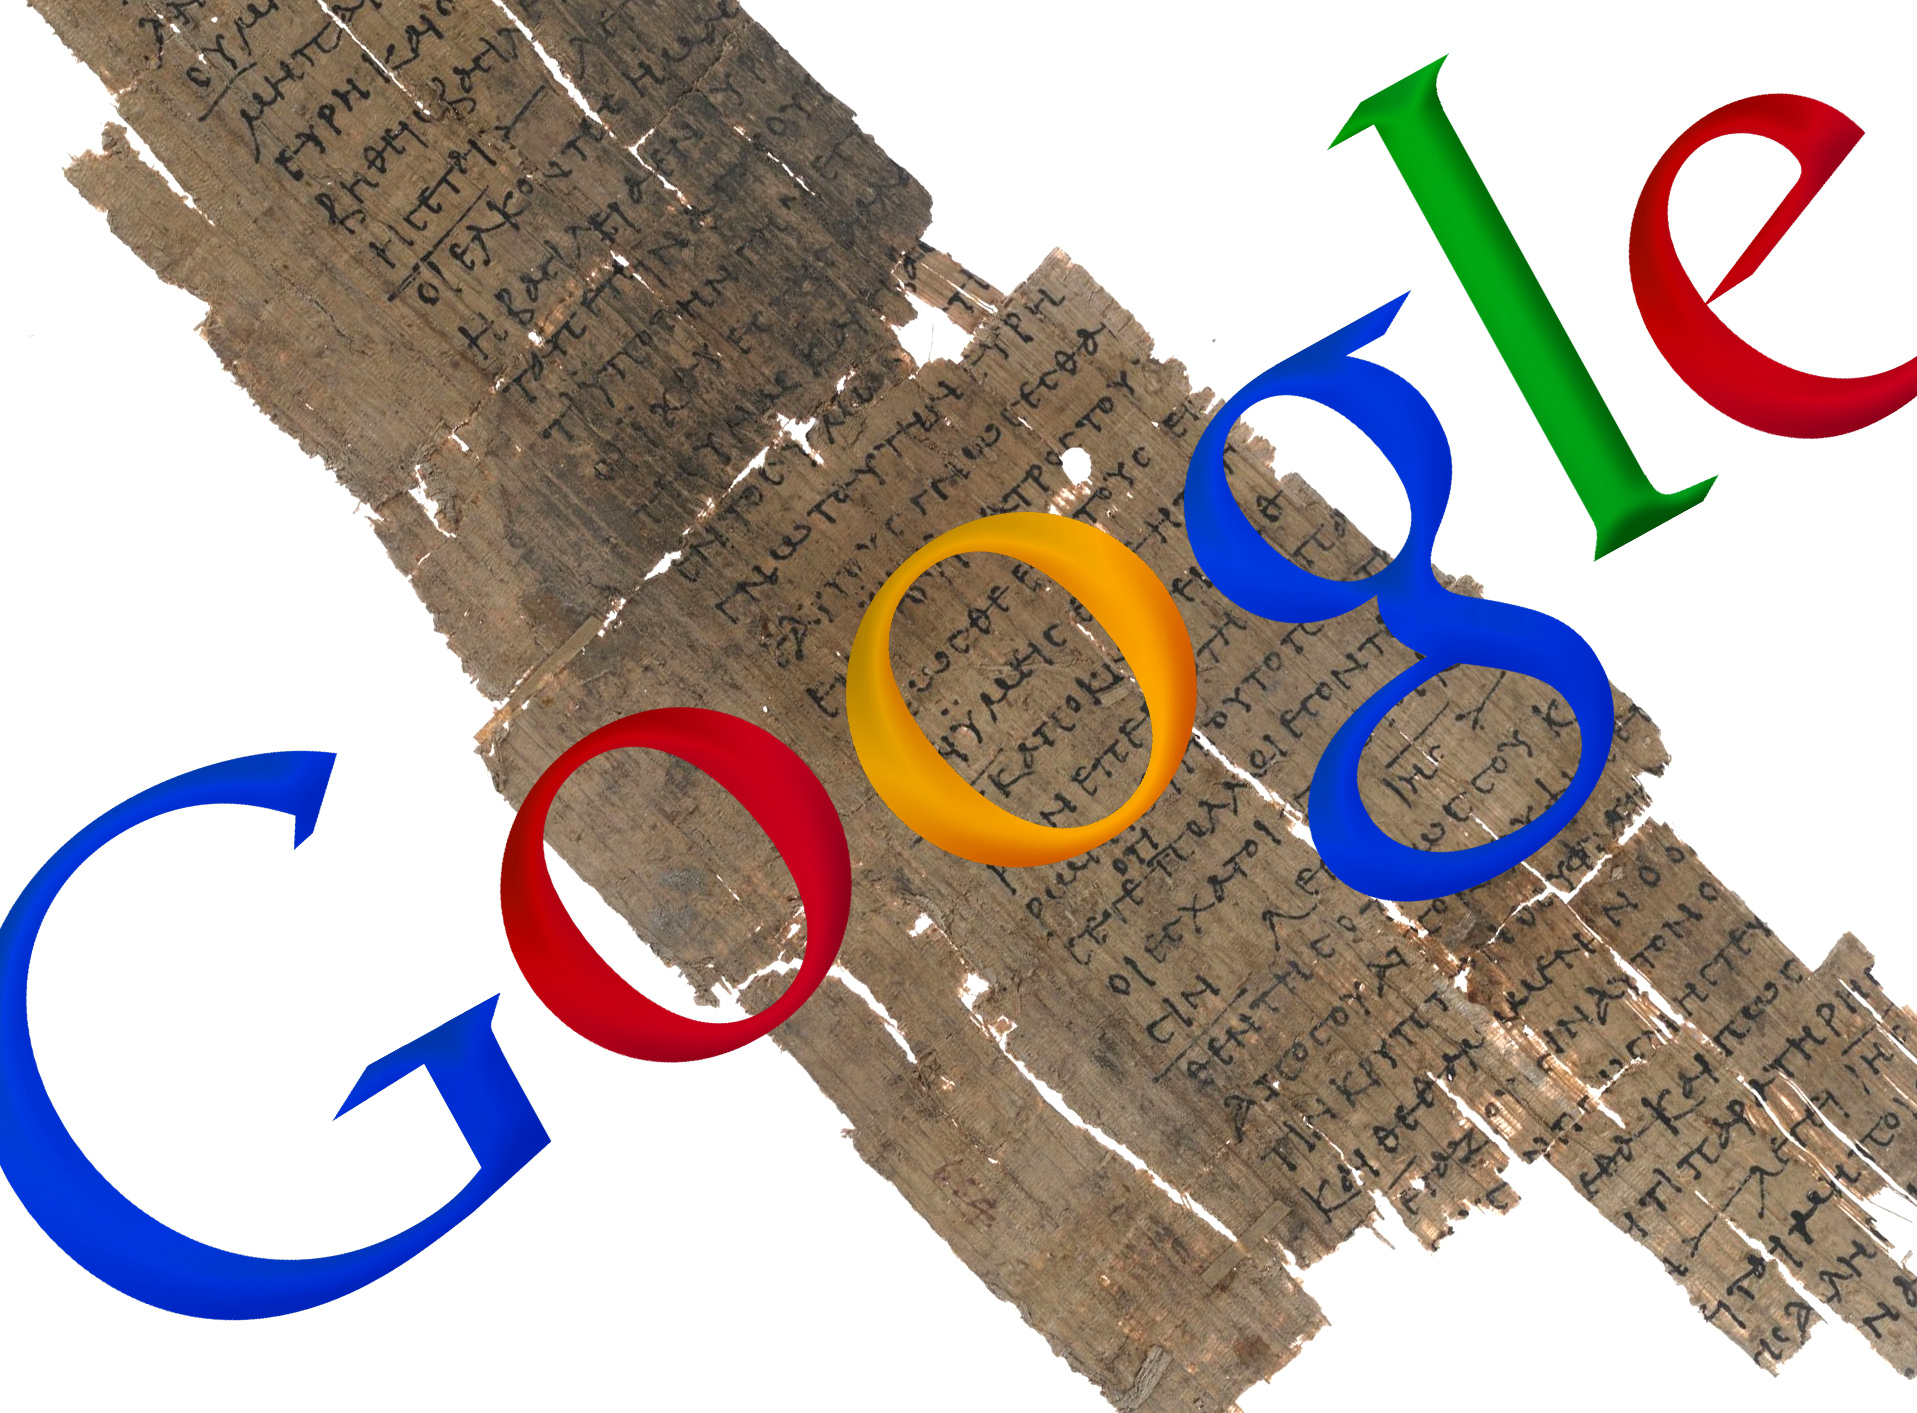 Google funds project investigating the geography of the ancient world